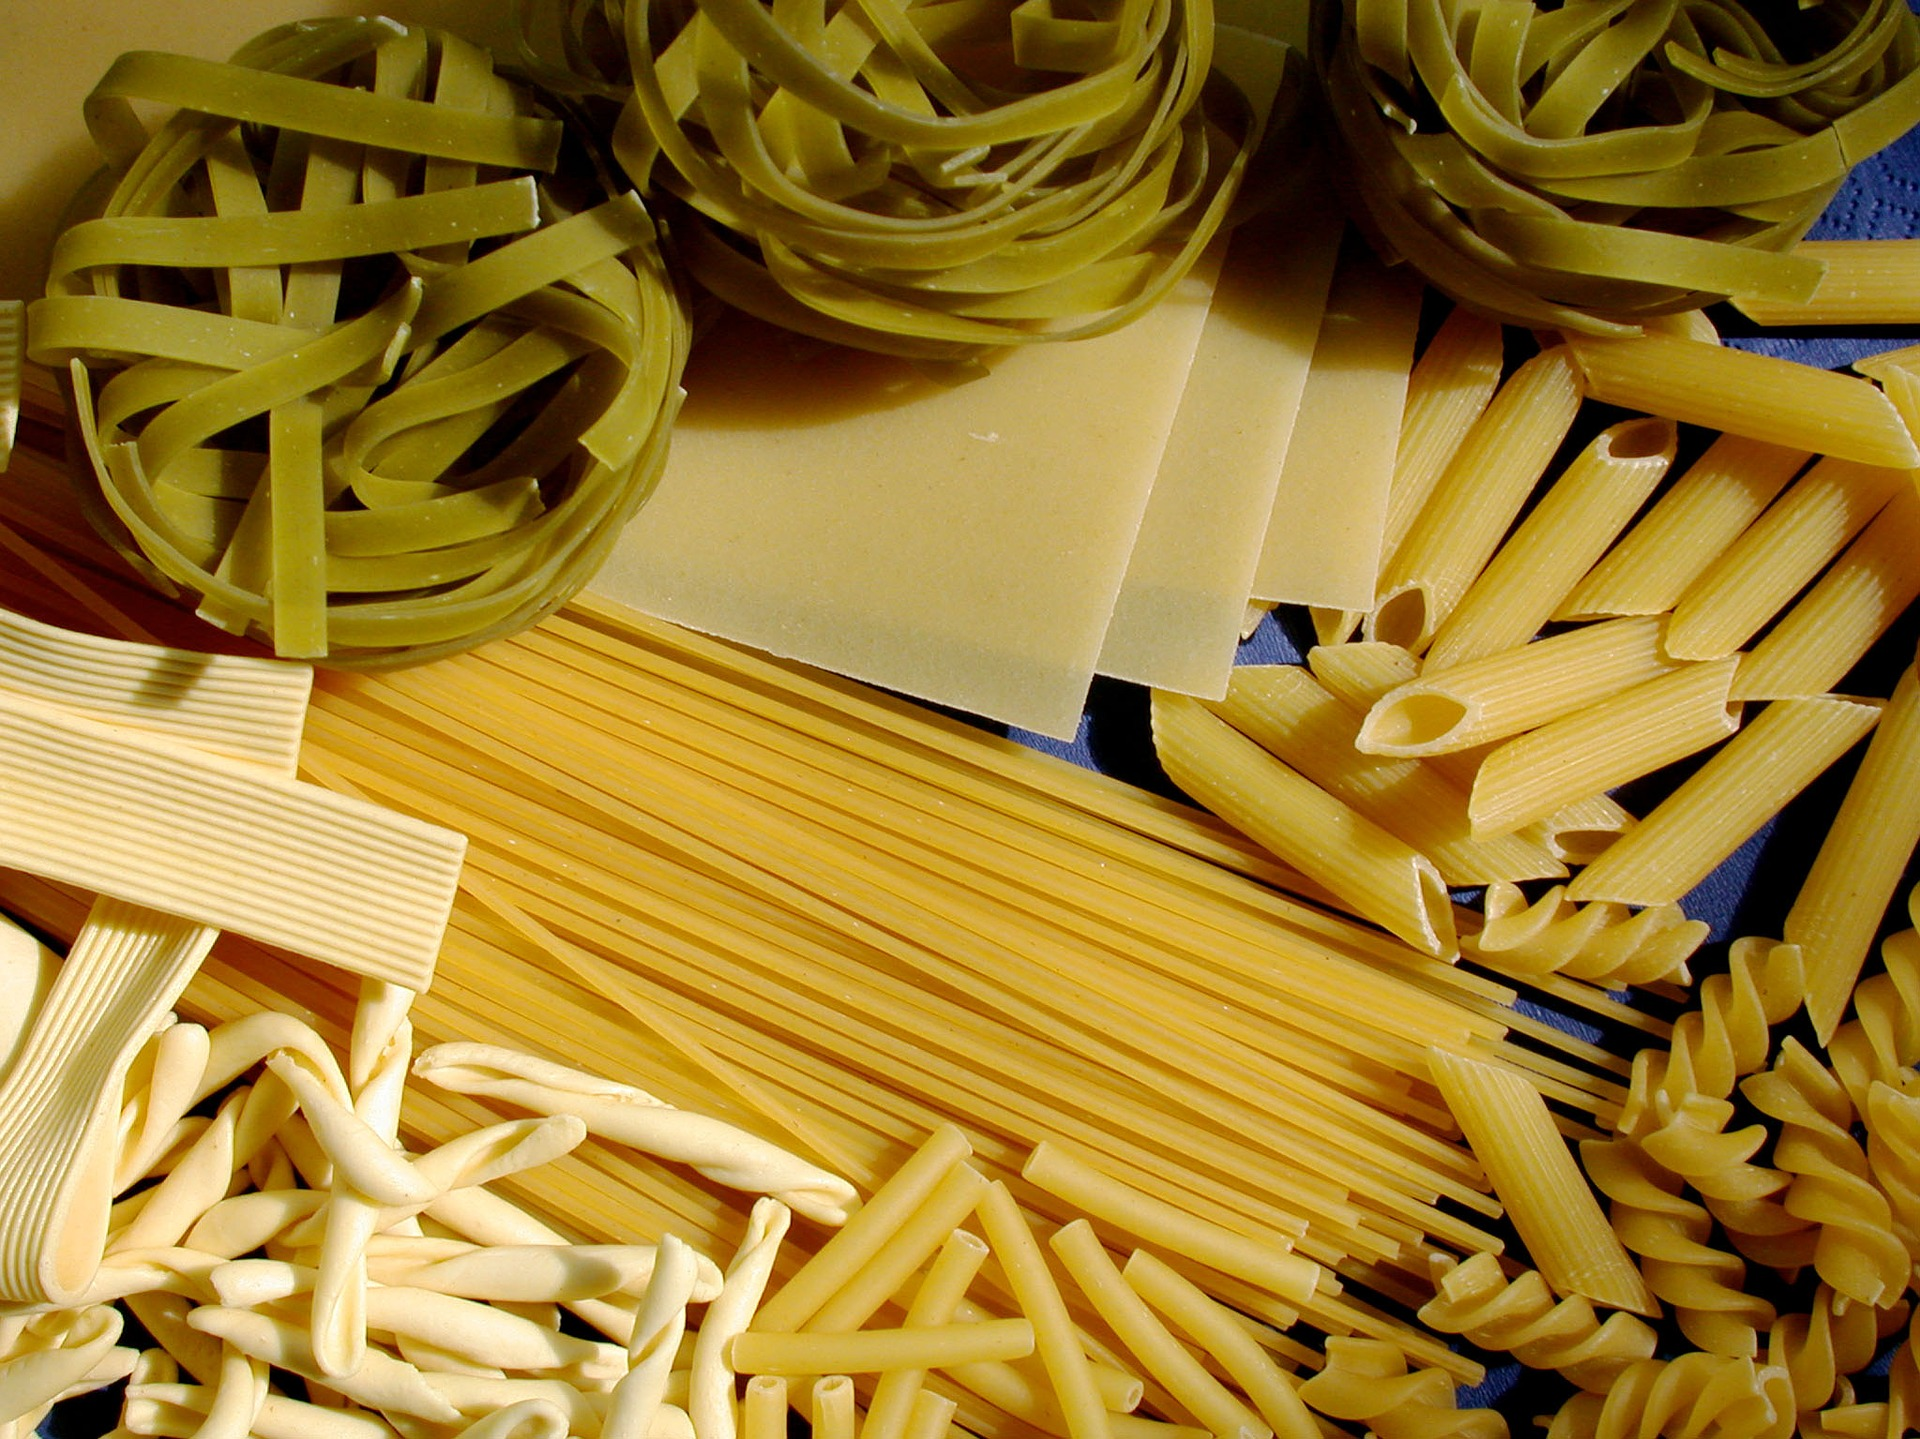 Different types of pasta - penne, spaghetti and farfalle